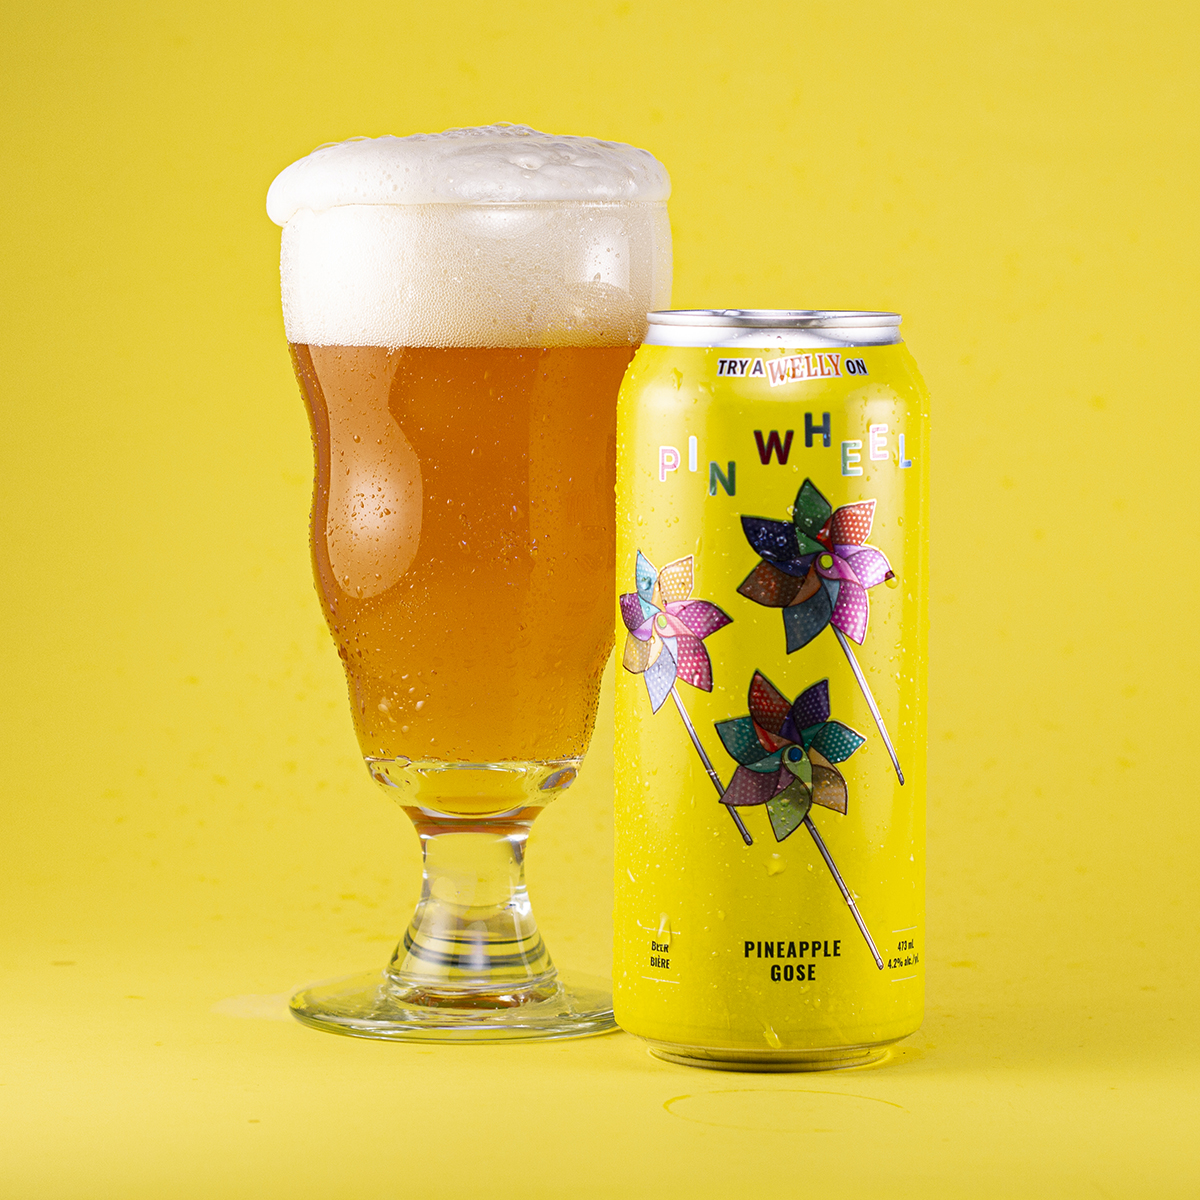 Pinwheel Pineapple gose glass